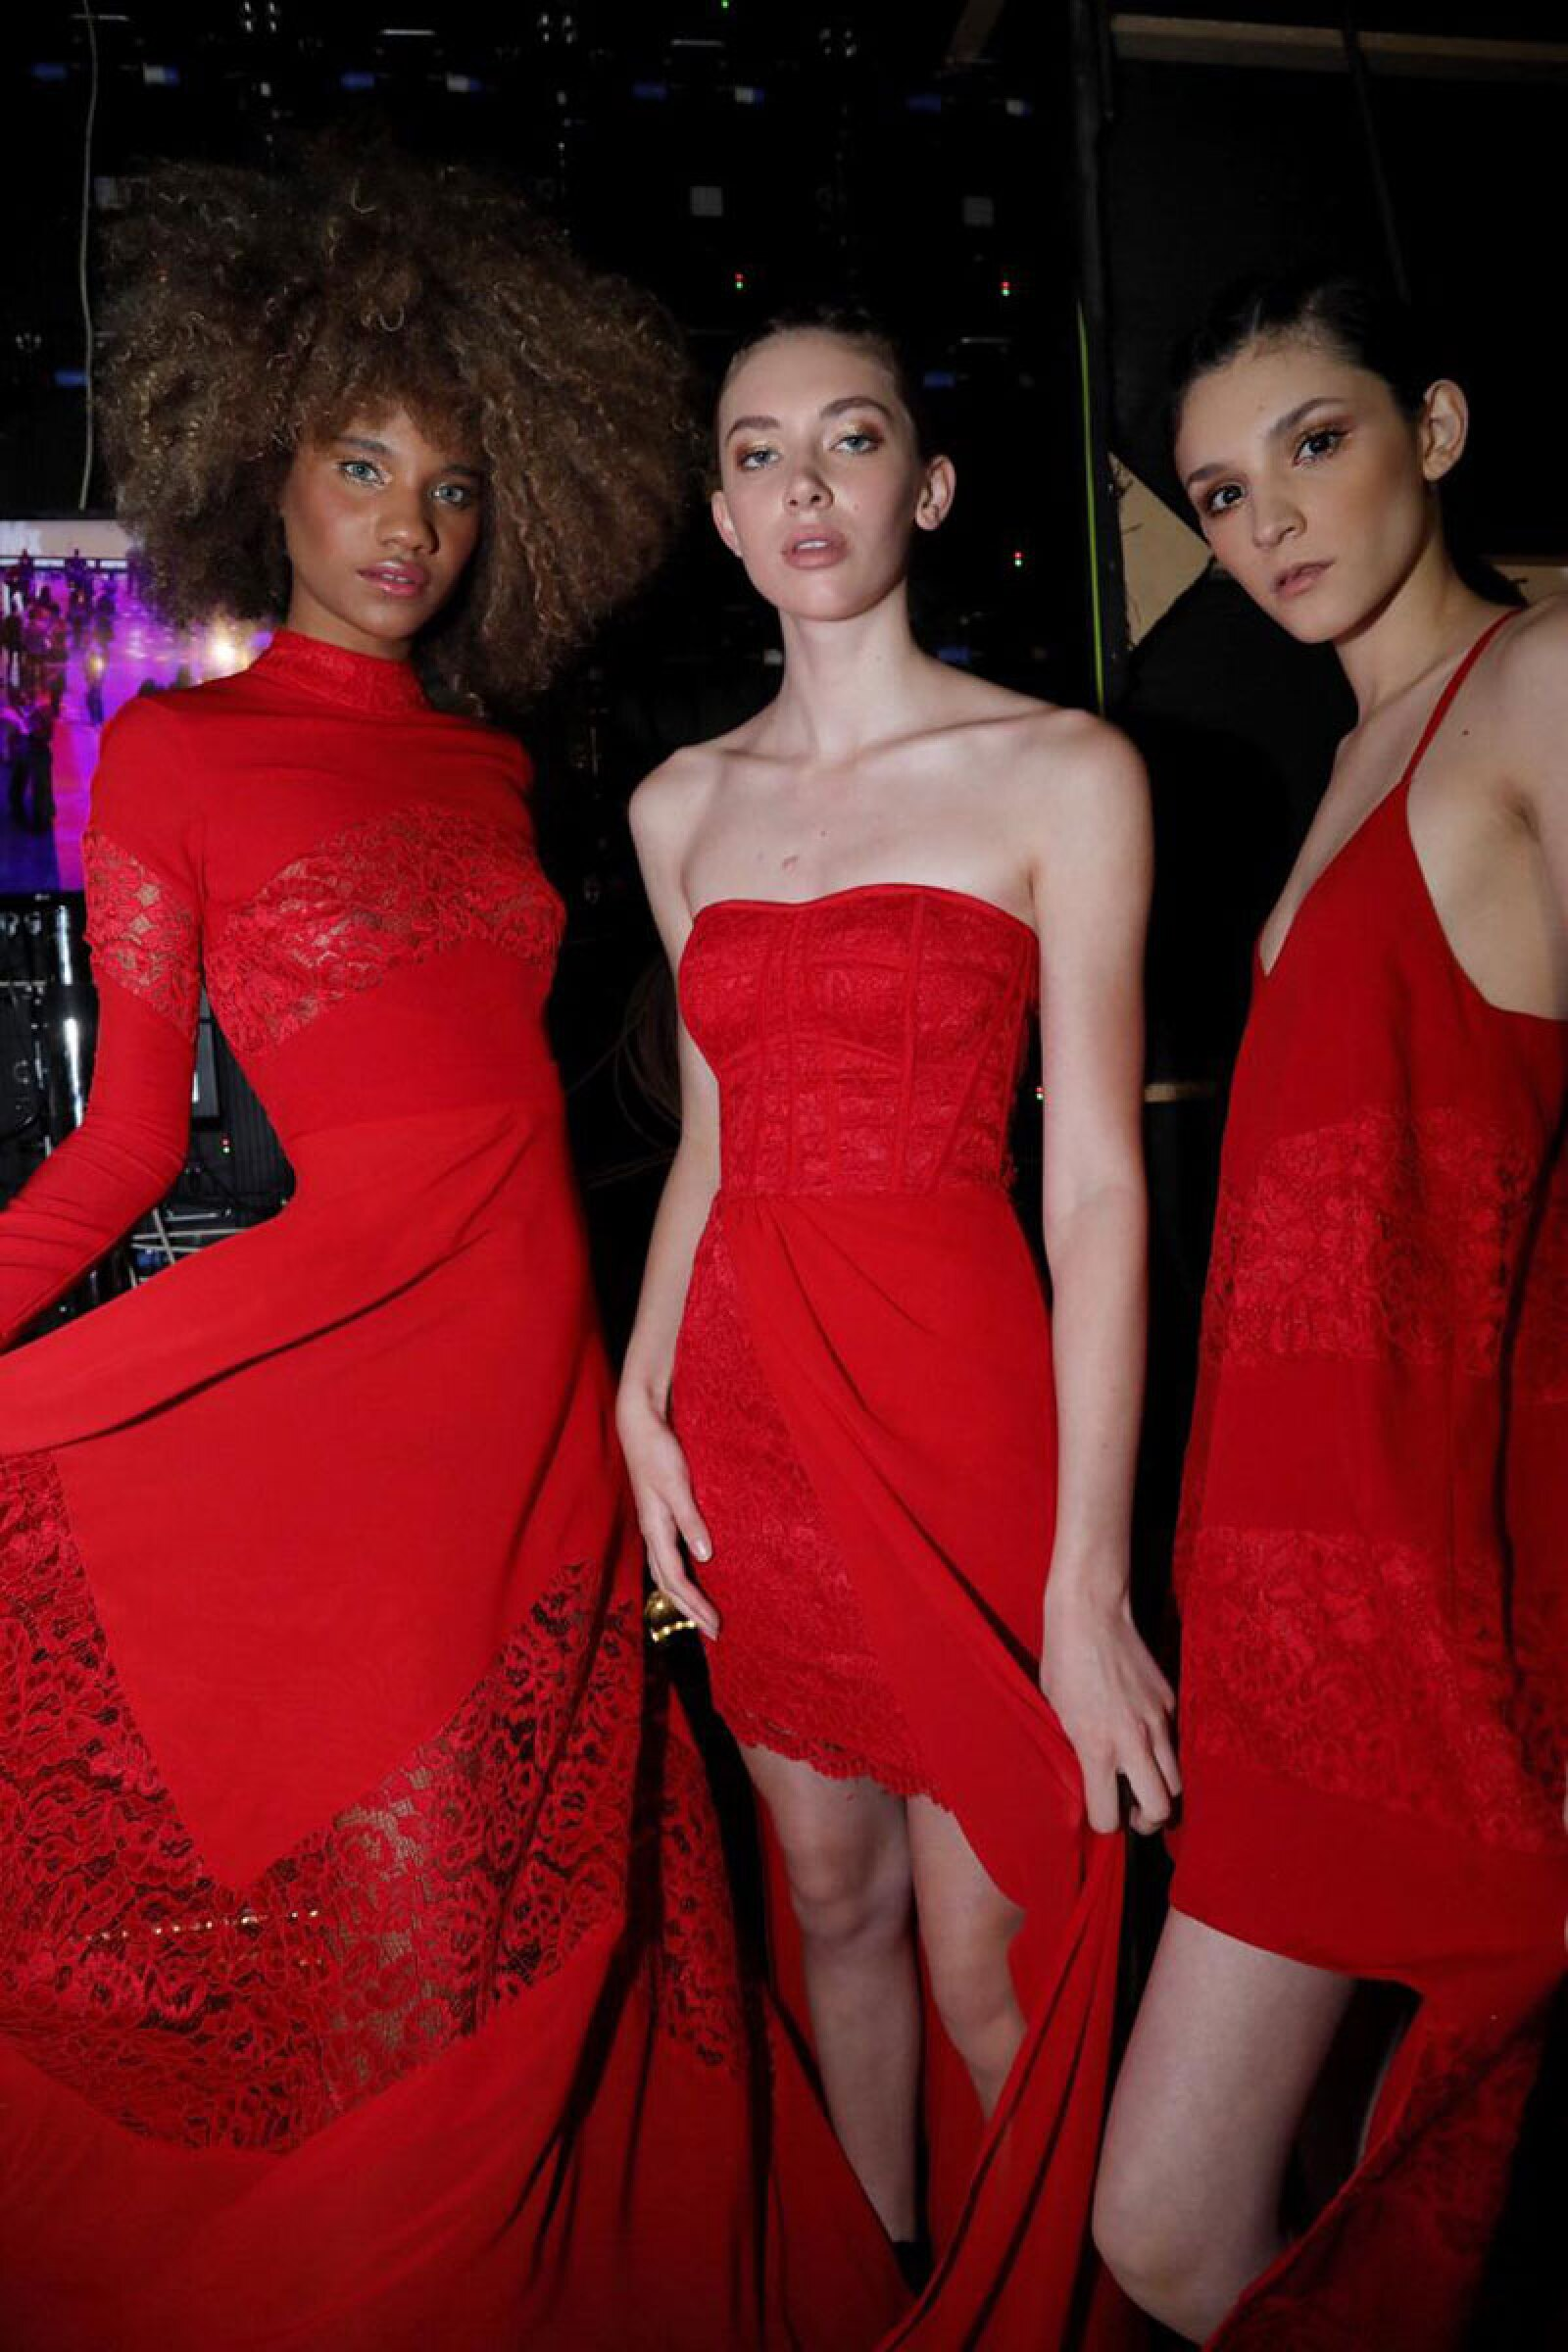 Vero-Diaz-MBFWMx-Models-Wearing-Red-On-Backstage